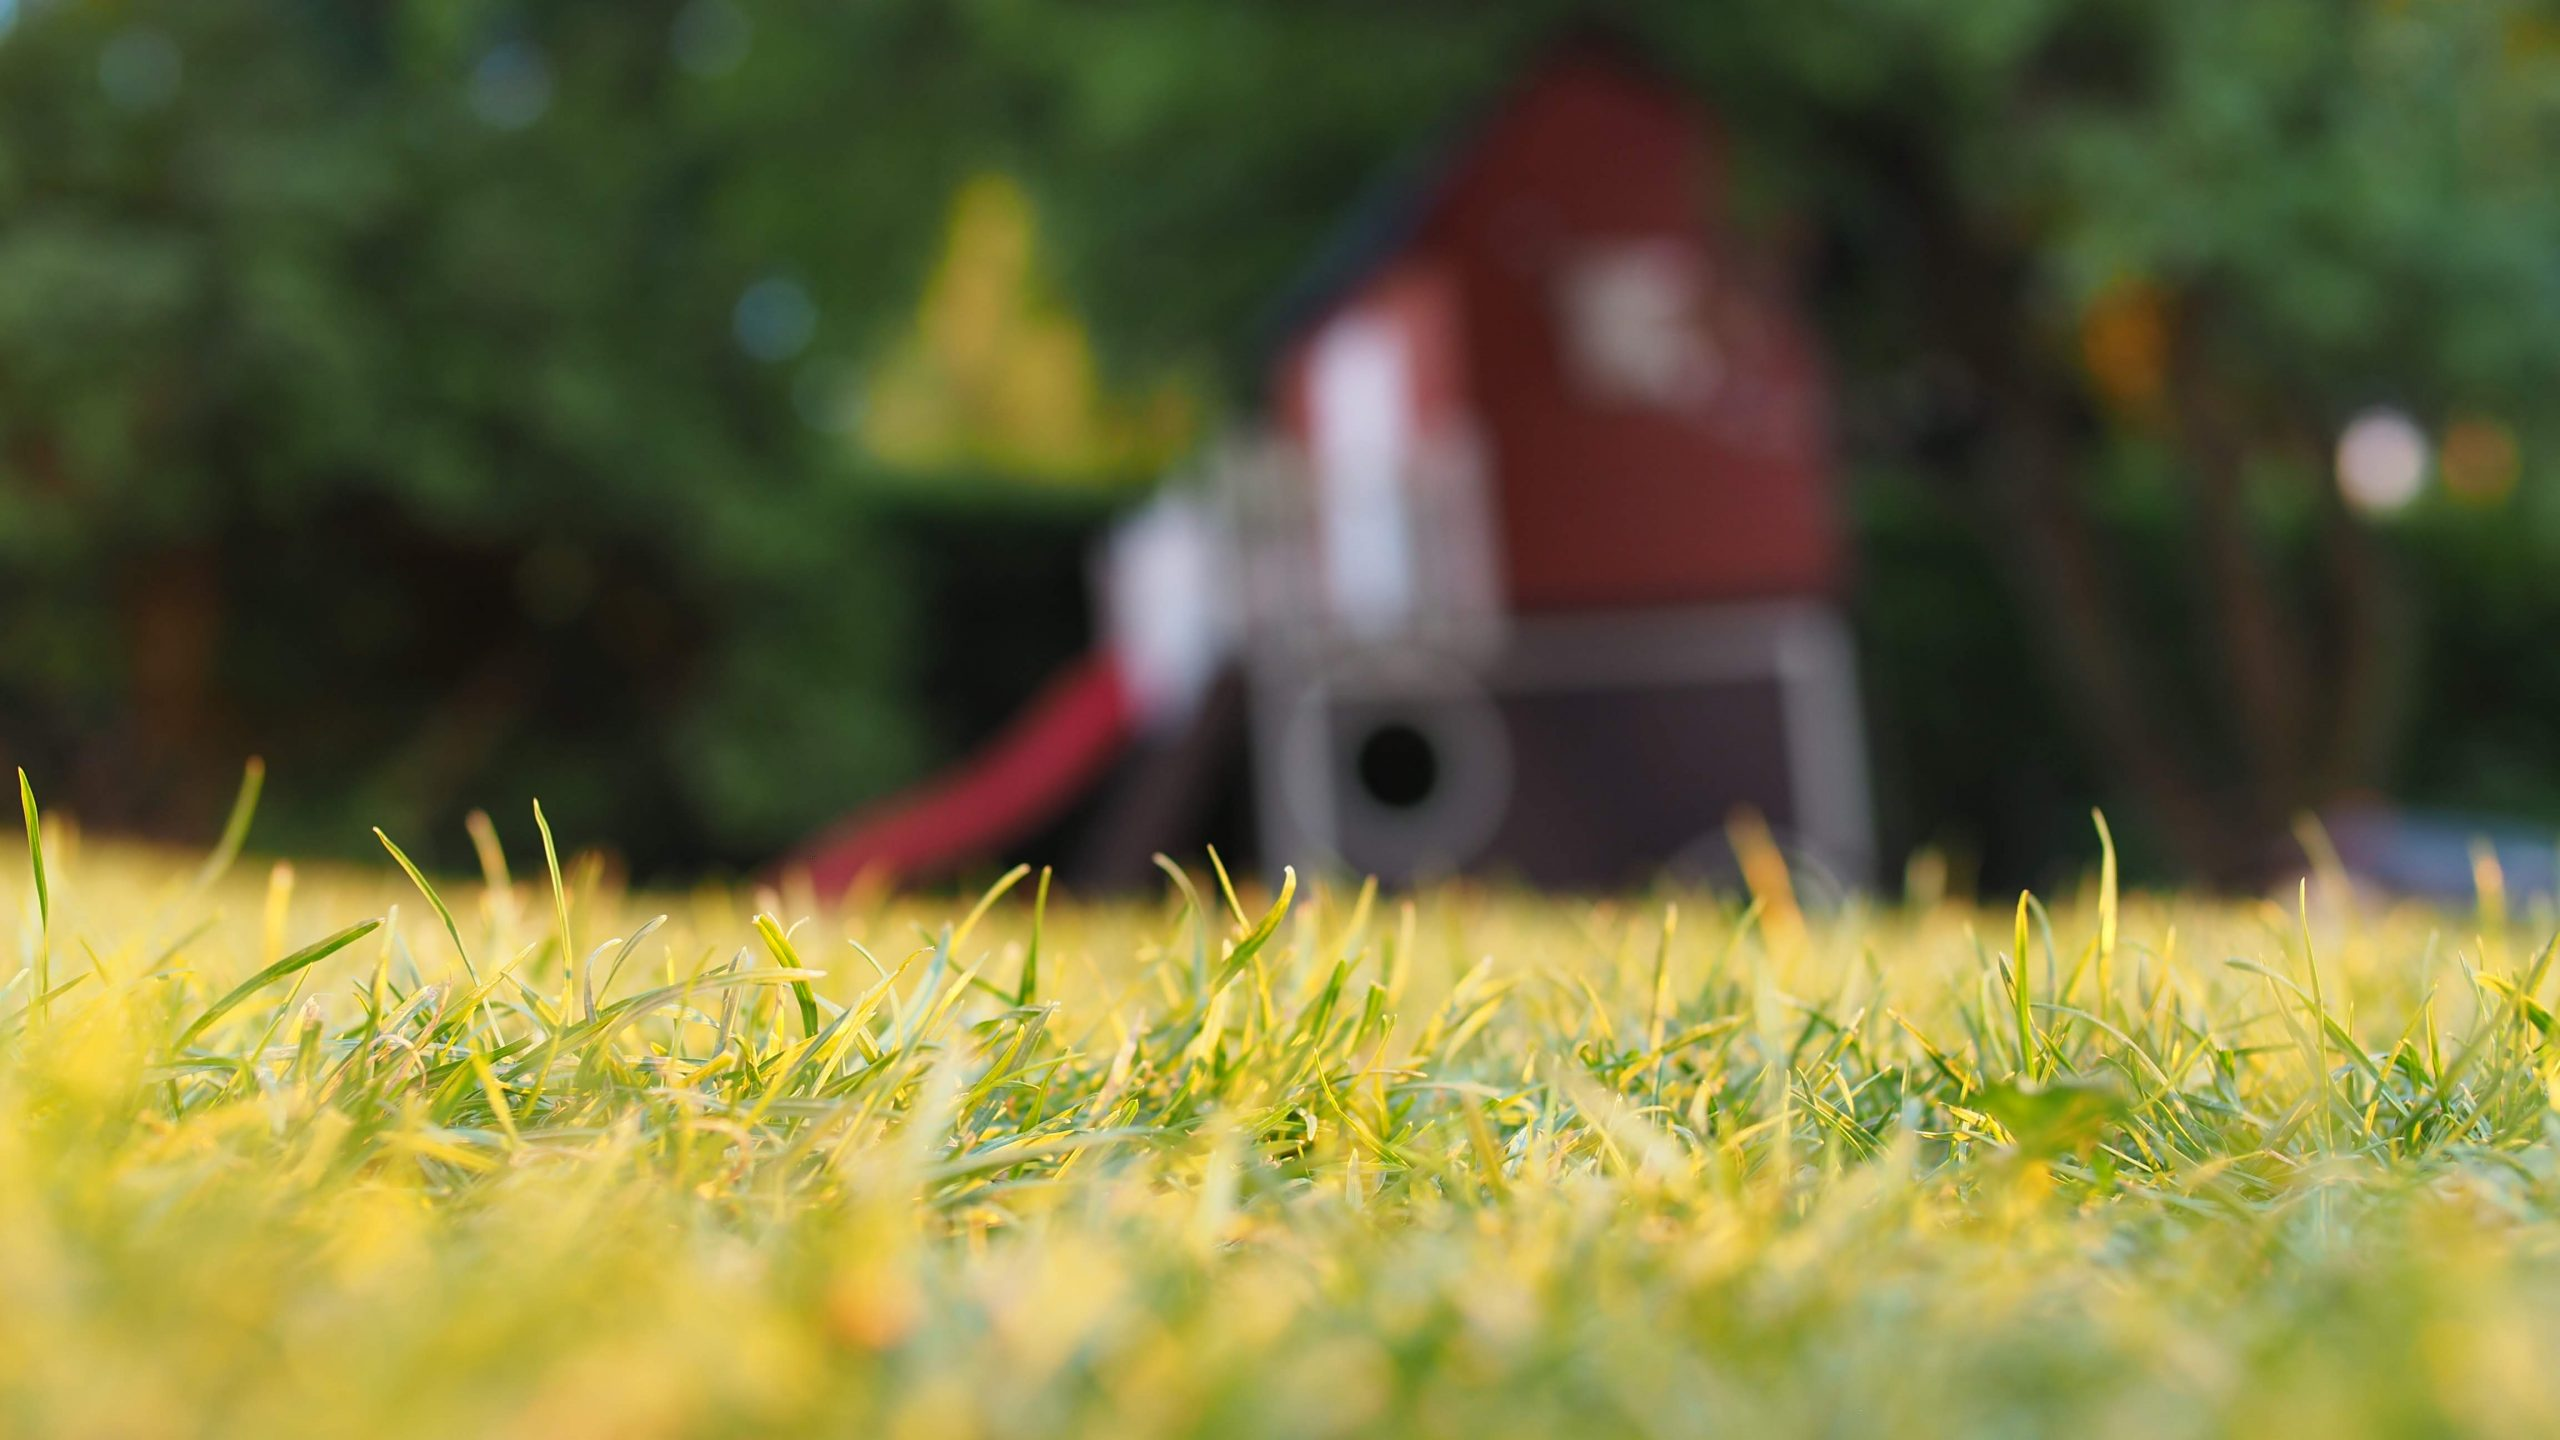 best local lawn care company in Green Bay mowing the lawn